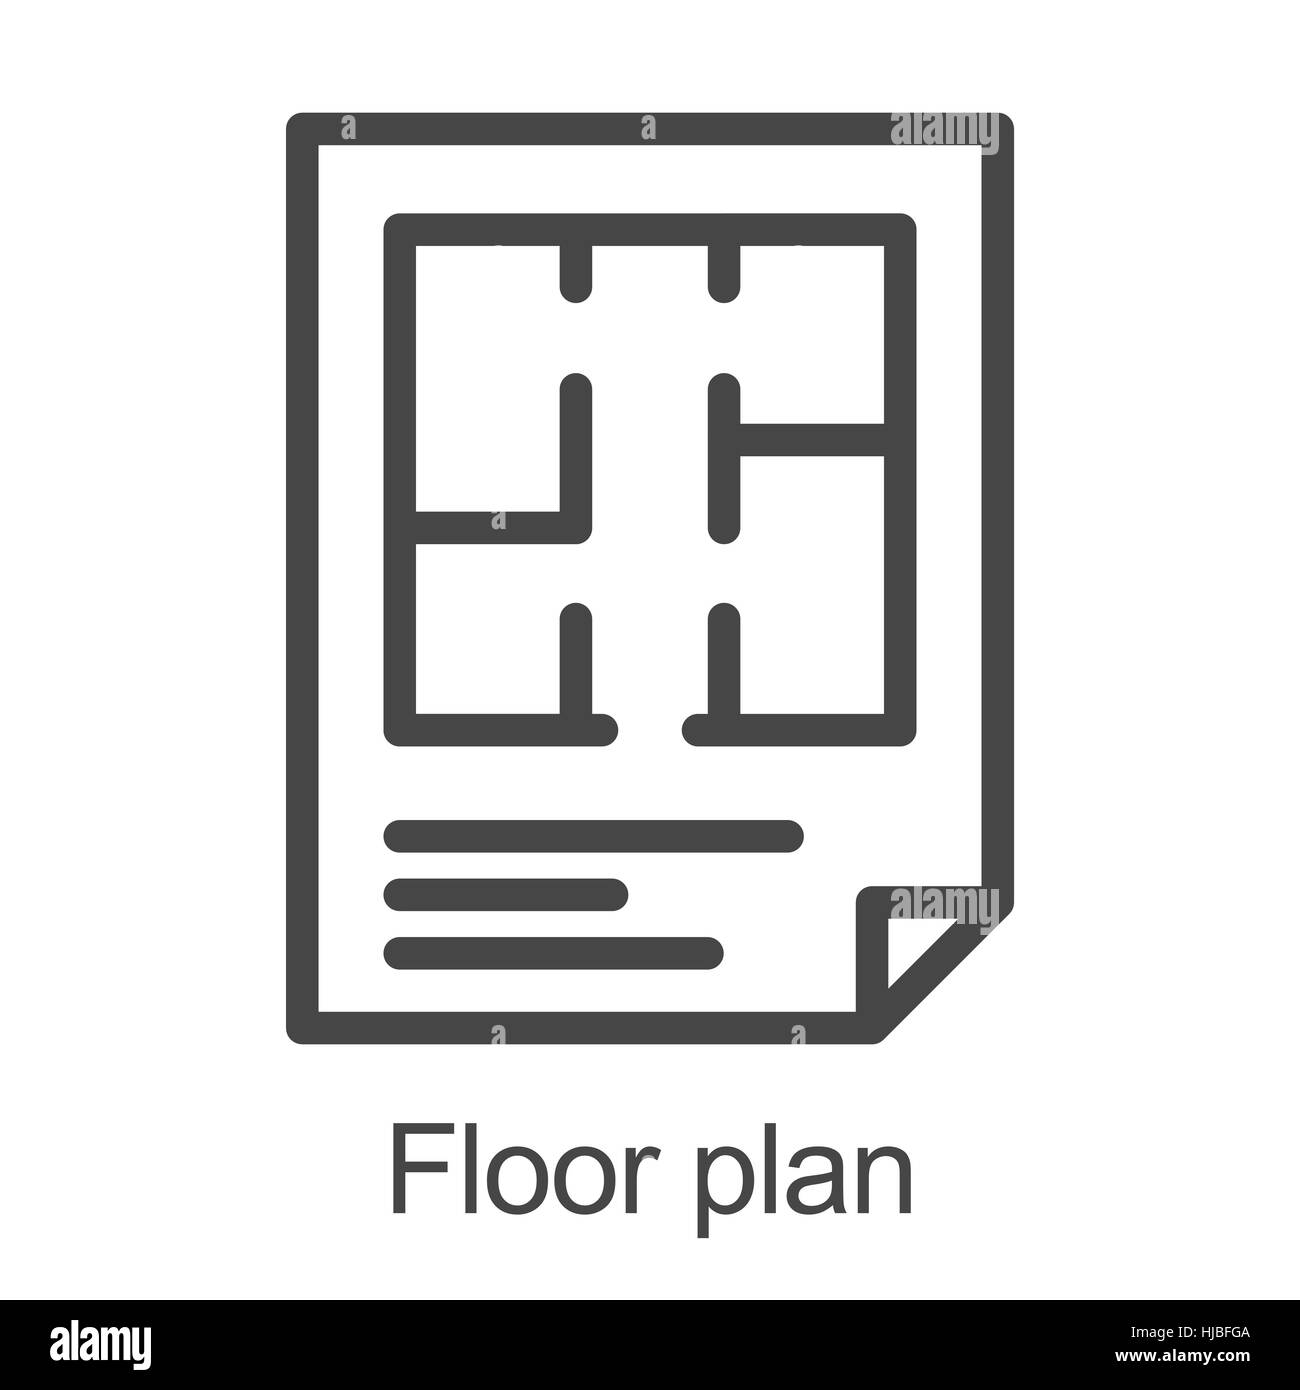 Flat Plan Flat Floor Plan Icon Stock Vector Art Illustration Vector Image